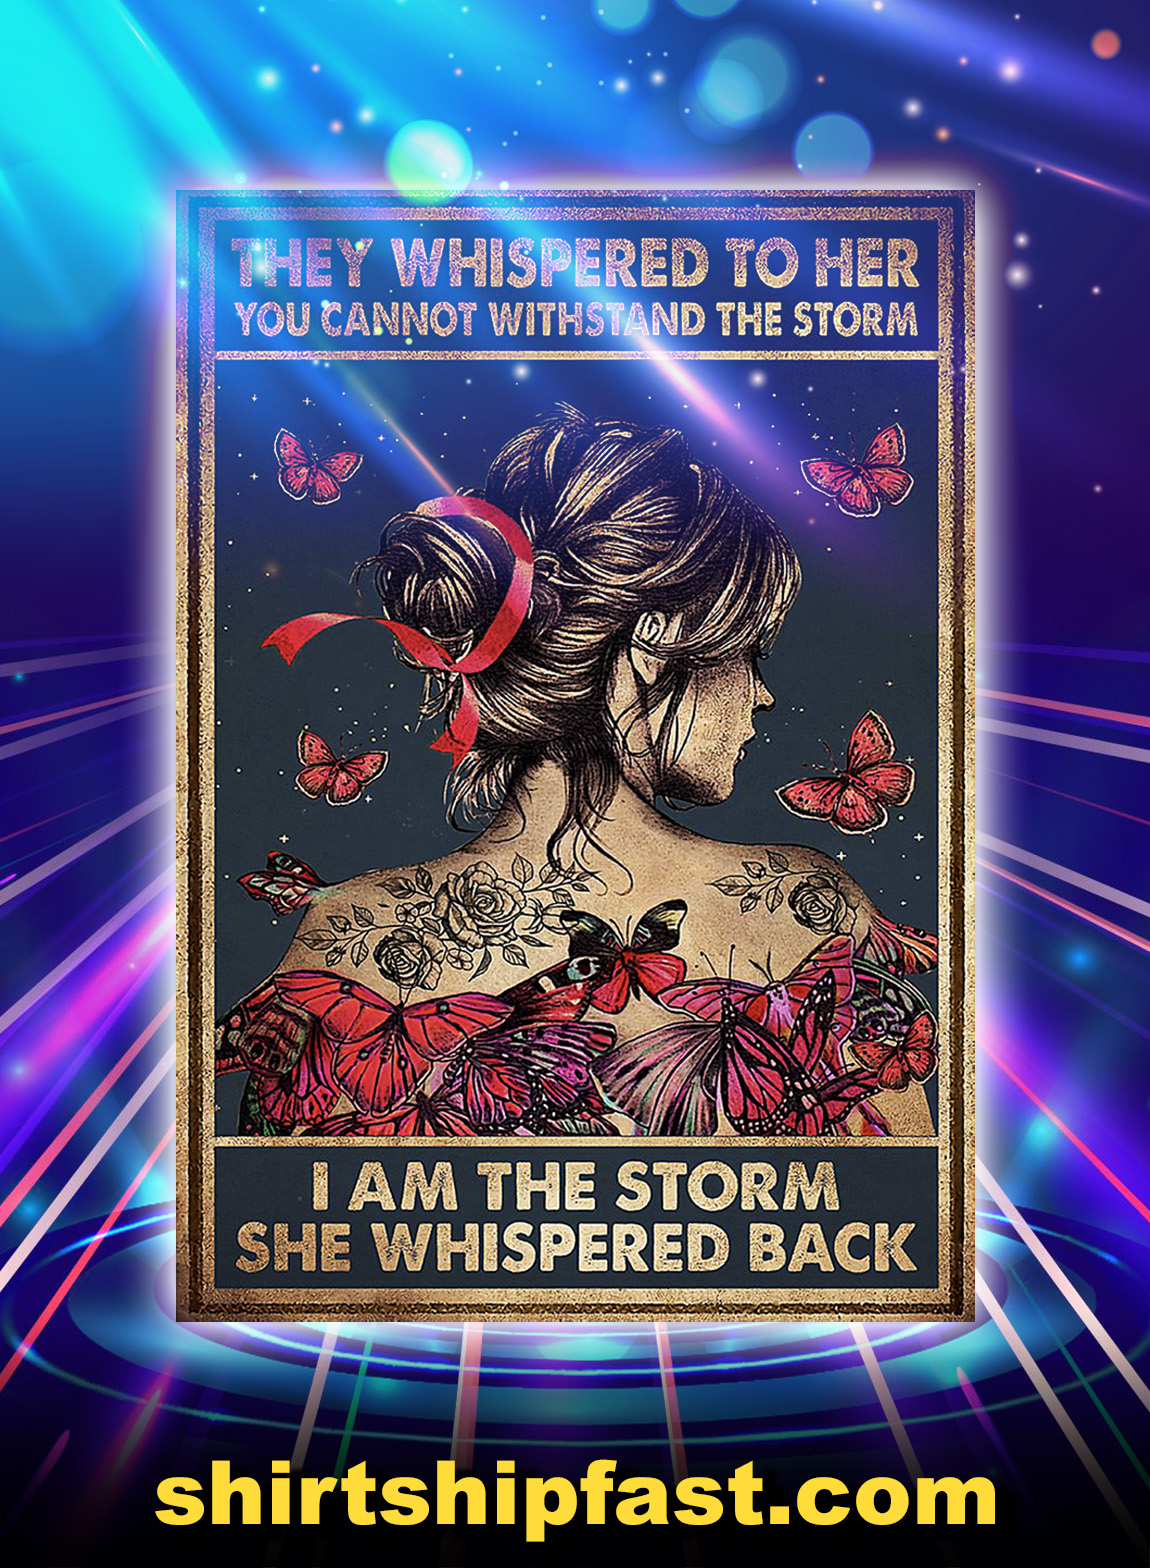 Breast cancer butterfly they whispered to her poster - A3